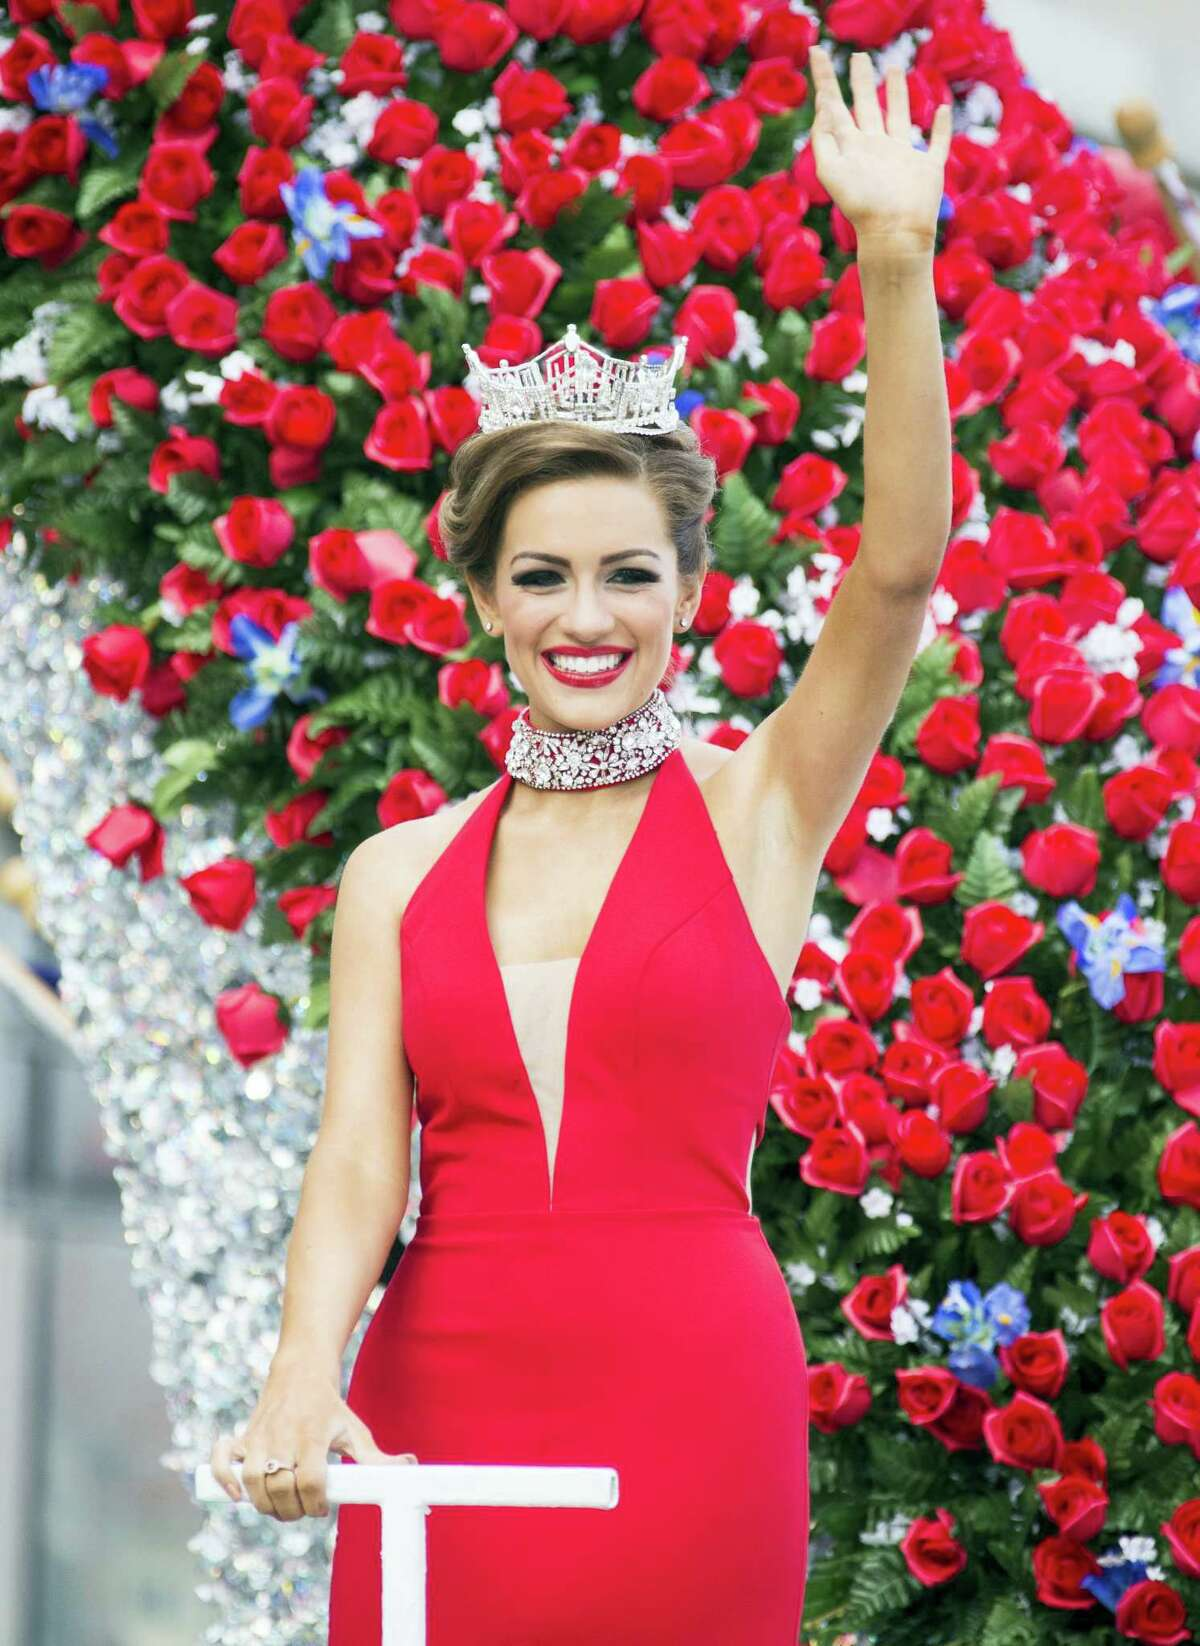 """Miss America 2016 Betty Cantrell waves to the crowd during the 2017 Miss America pageant """"Show Us Your Shoes"""" parade on Sept. 10, 2016 in Atlantic City."""